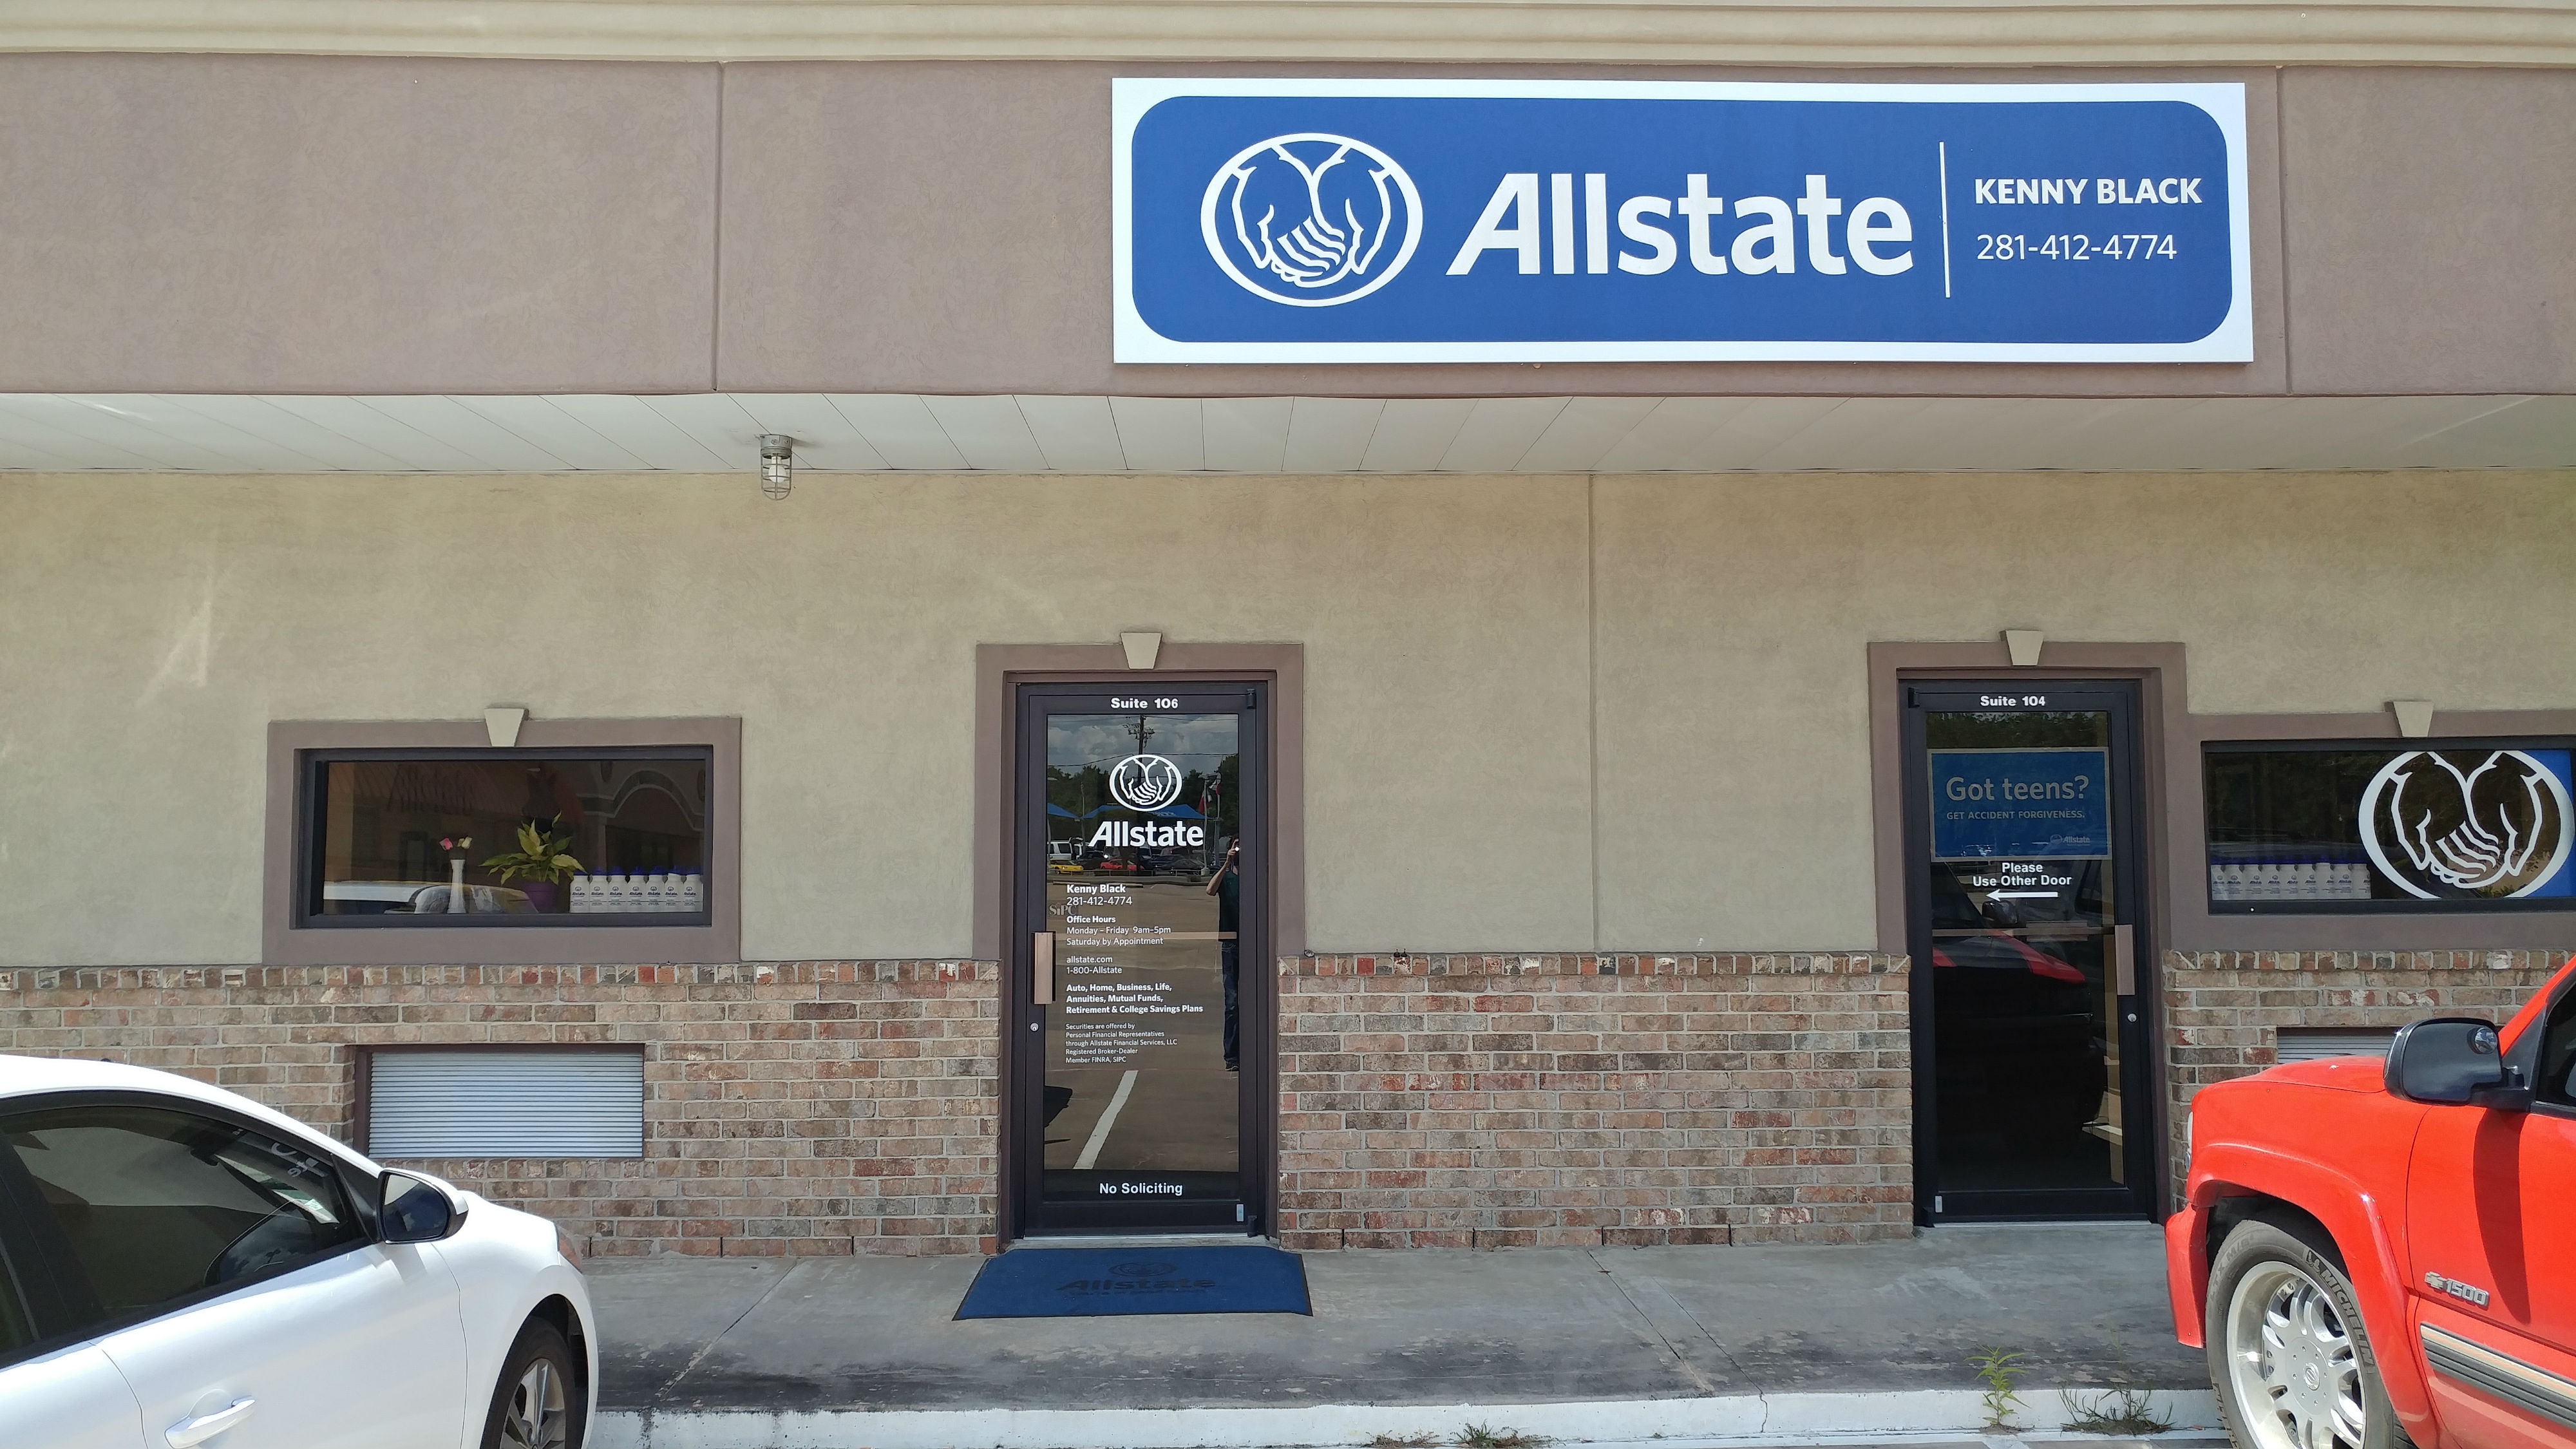 Life, Home, & Car Insurance Quotes In Pearland, Tx. Senior Life Insurance Company Jobs. Home Insurance Quotes Online. Cable Phone Internet Packages. Cable Tv Kissimmee Florida Online Mba 1 Year. Nationwide Savings Plan Wichita Website Design. How To Make A Web Hosting Company. Solution For Erectile Dysfunction. Massage Schools Columbus Ohio